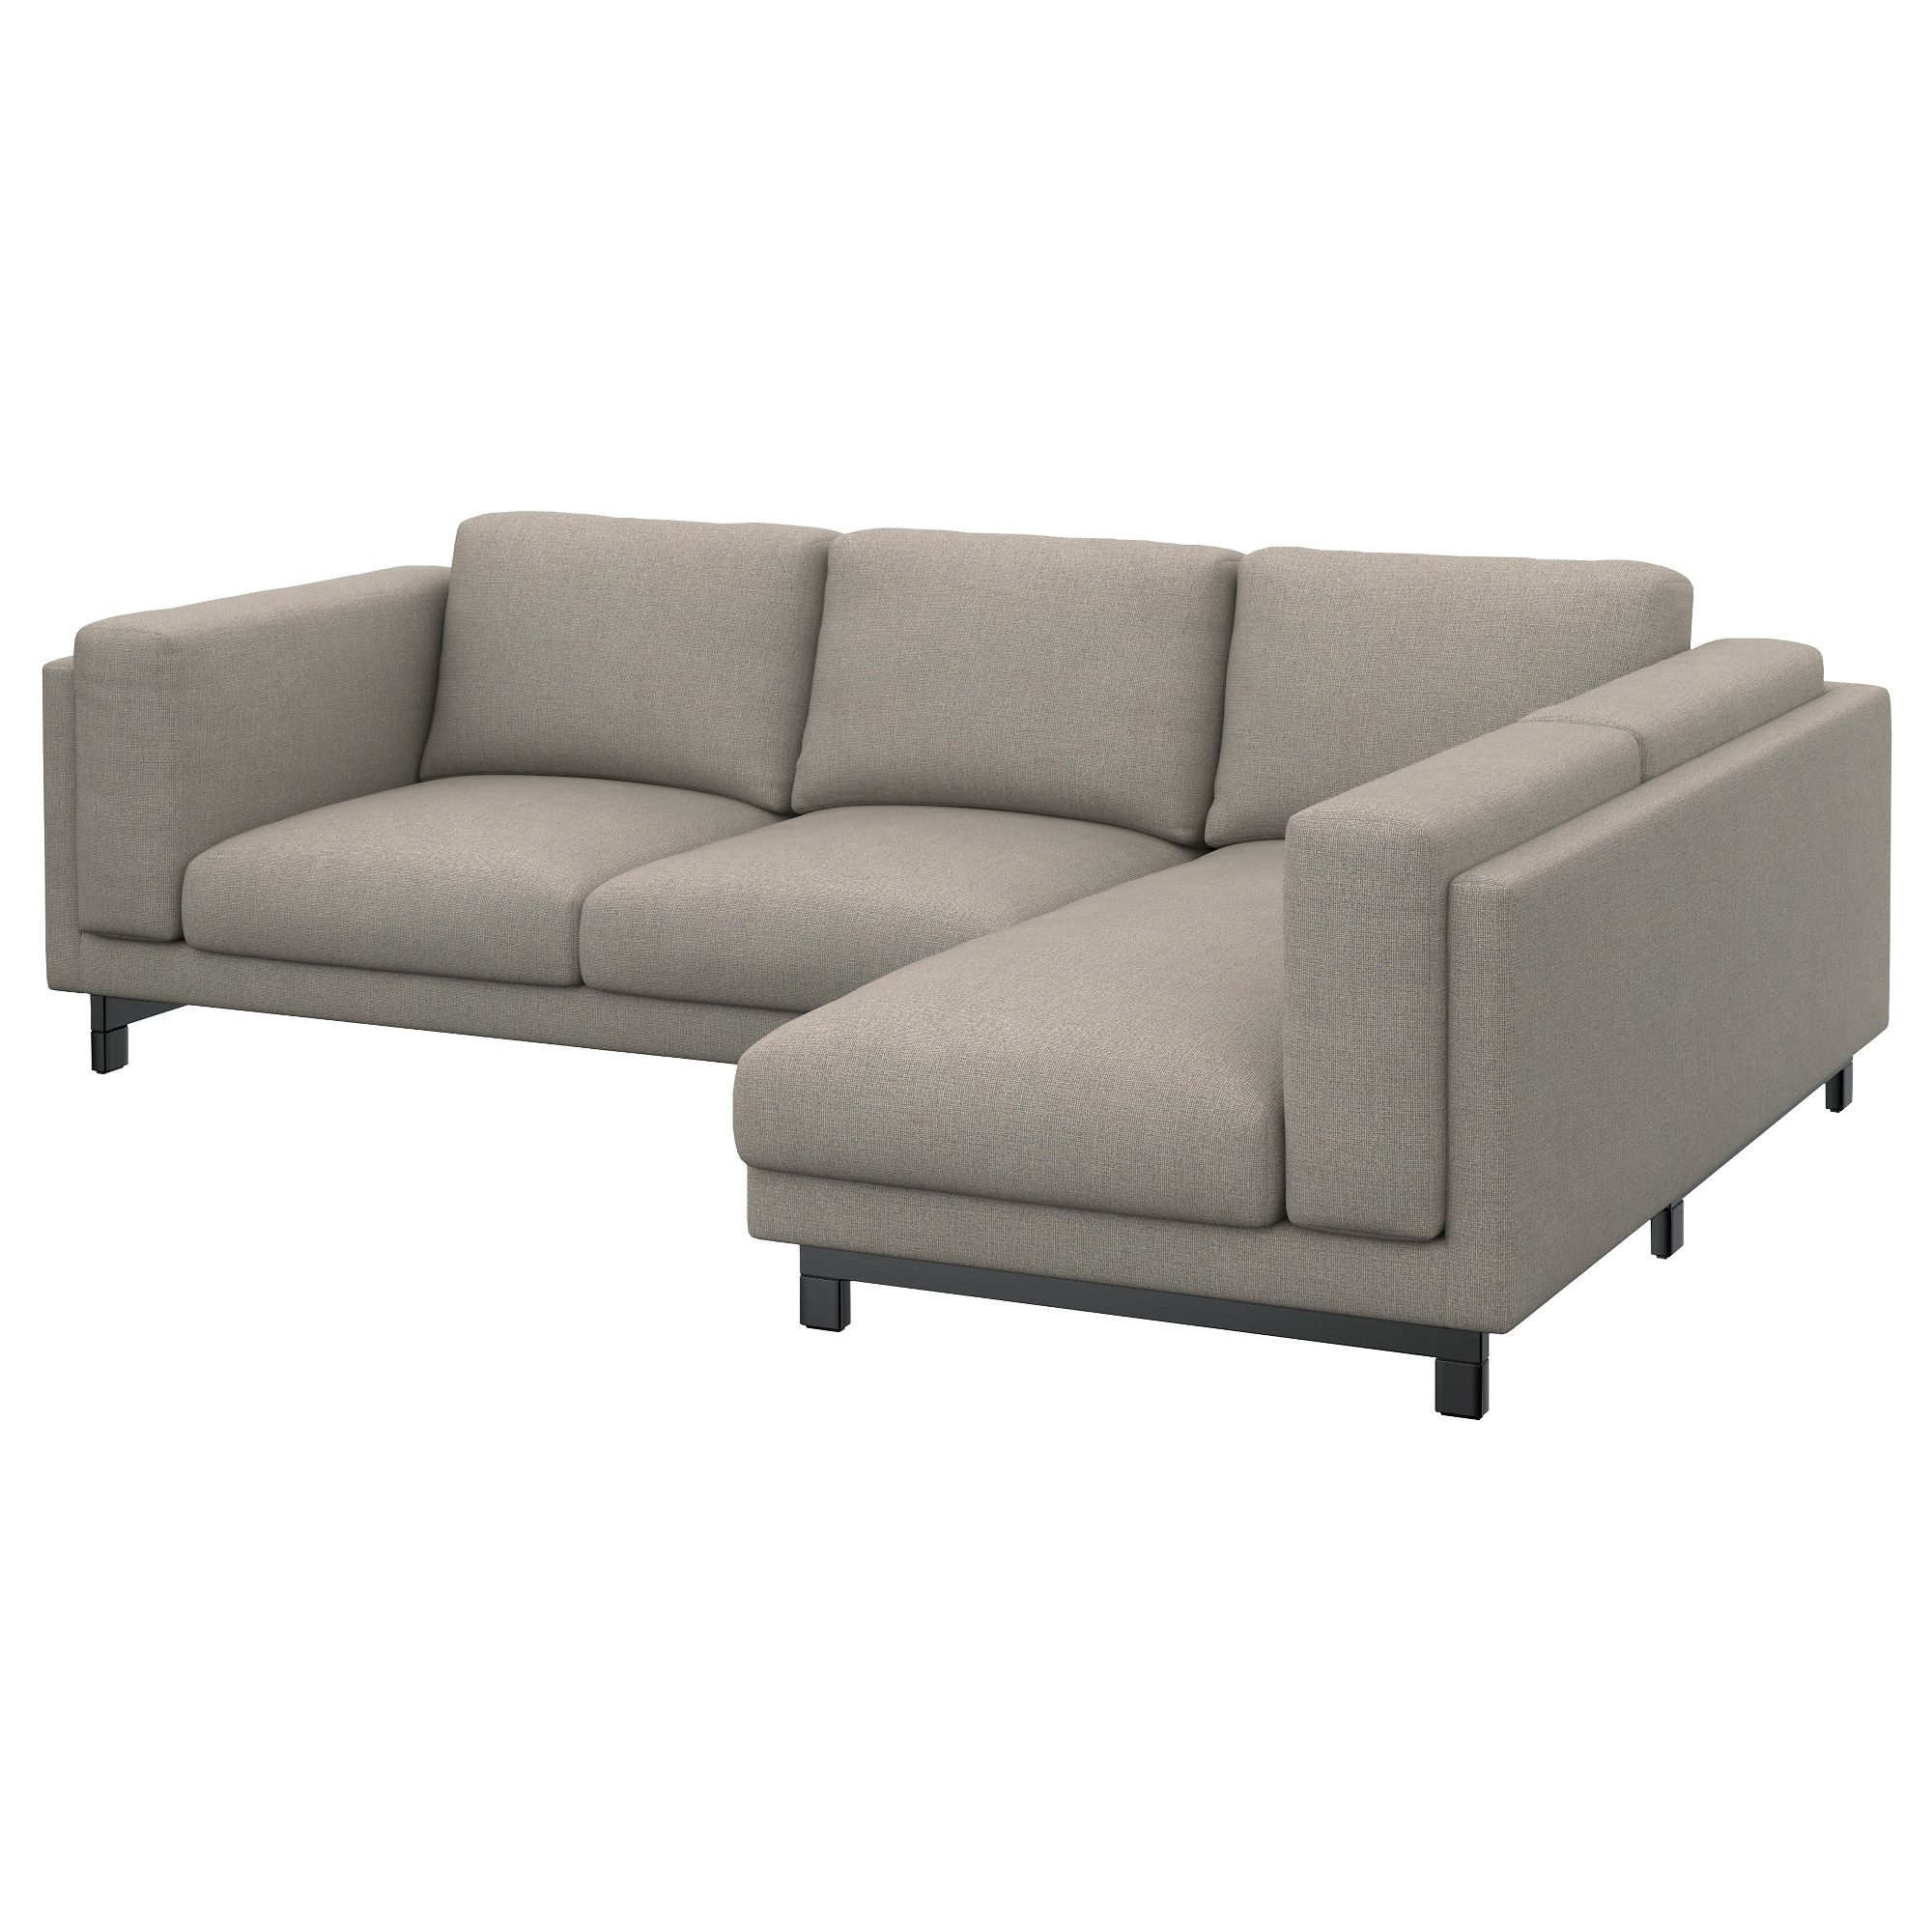 My Y Sofa Is Too Small For The Two Of Us Nockeby Loveseat With Chaise